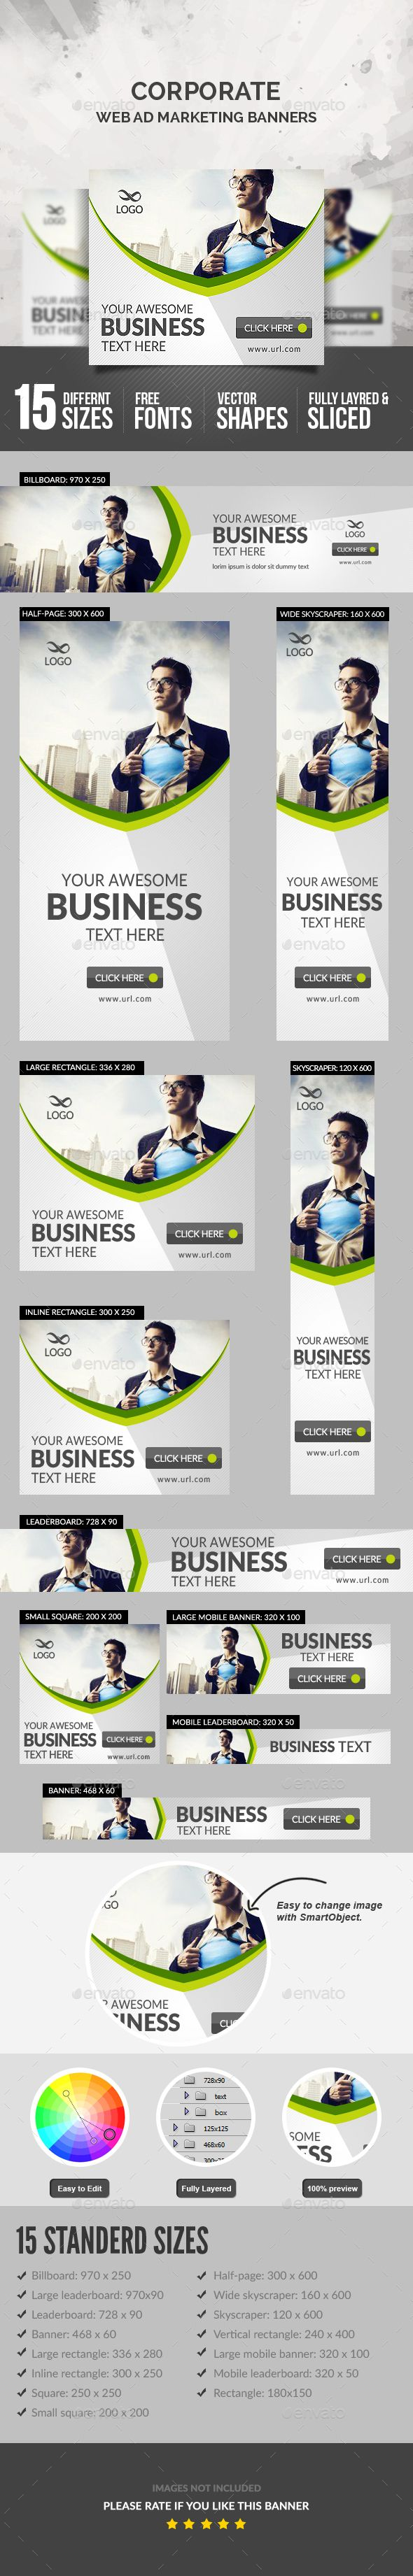 Corporate Banner Template PSD. Download here: https://graphicriver.net/item/corporate-banner/17558332?ref=ksioks